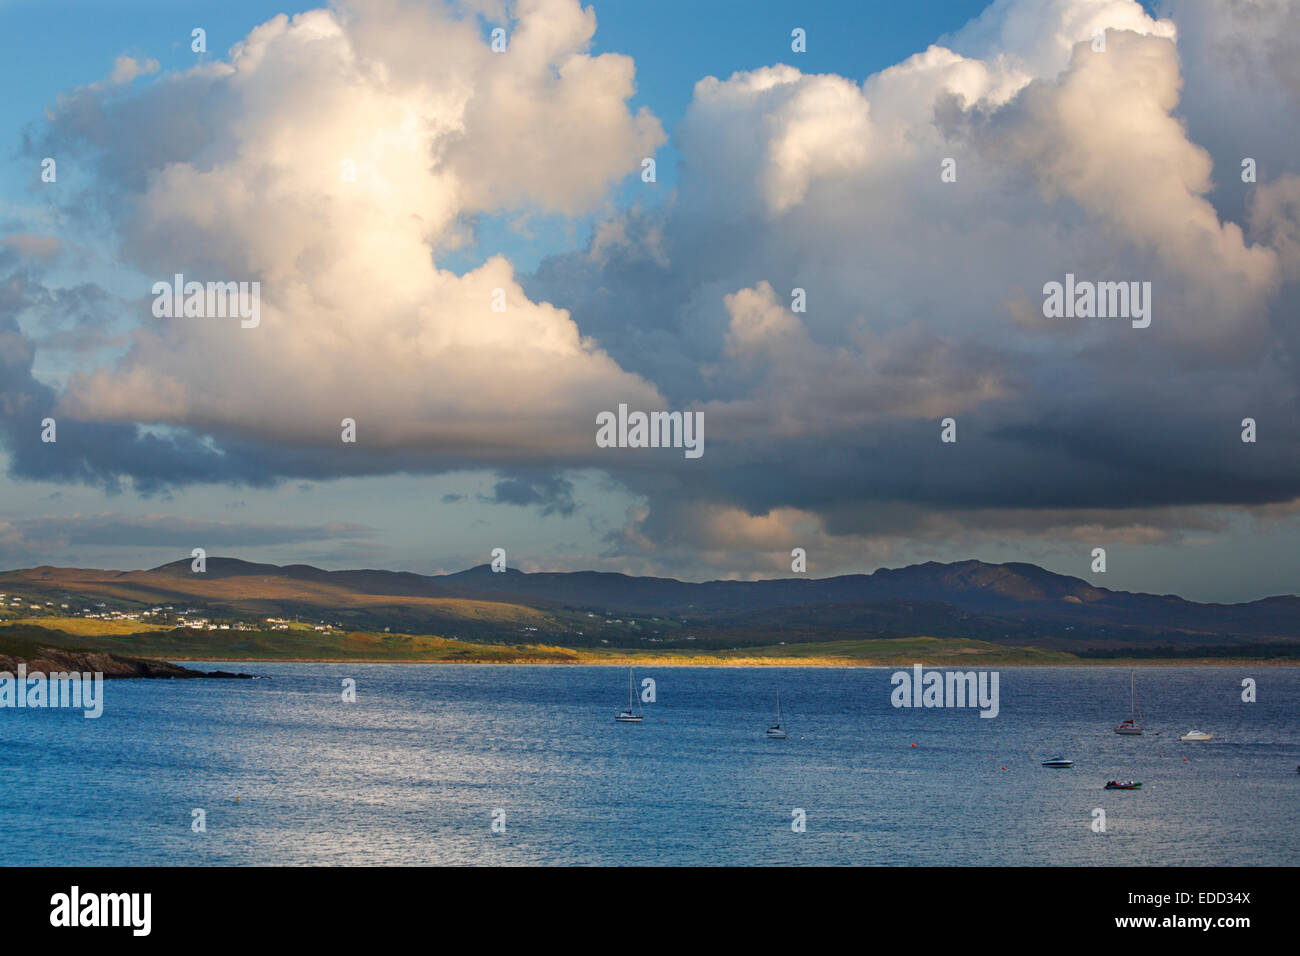 Downings bay, Donegal - Stock Image